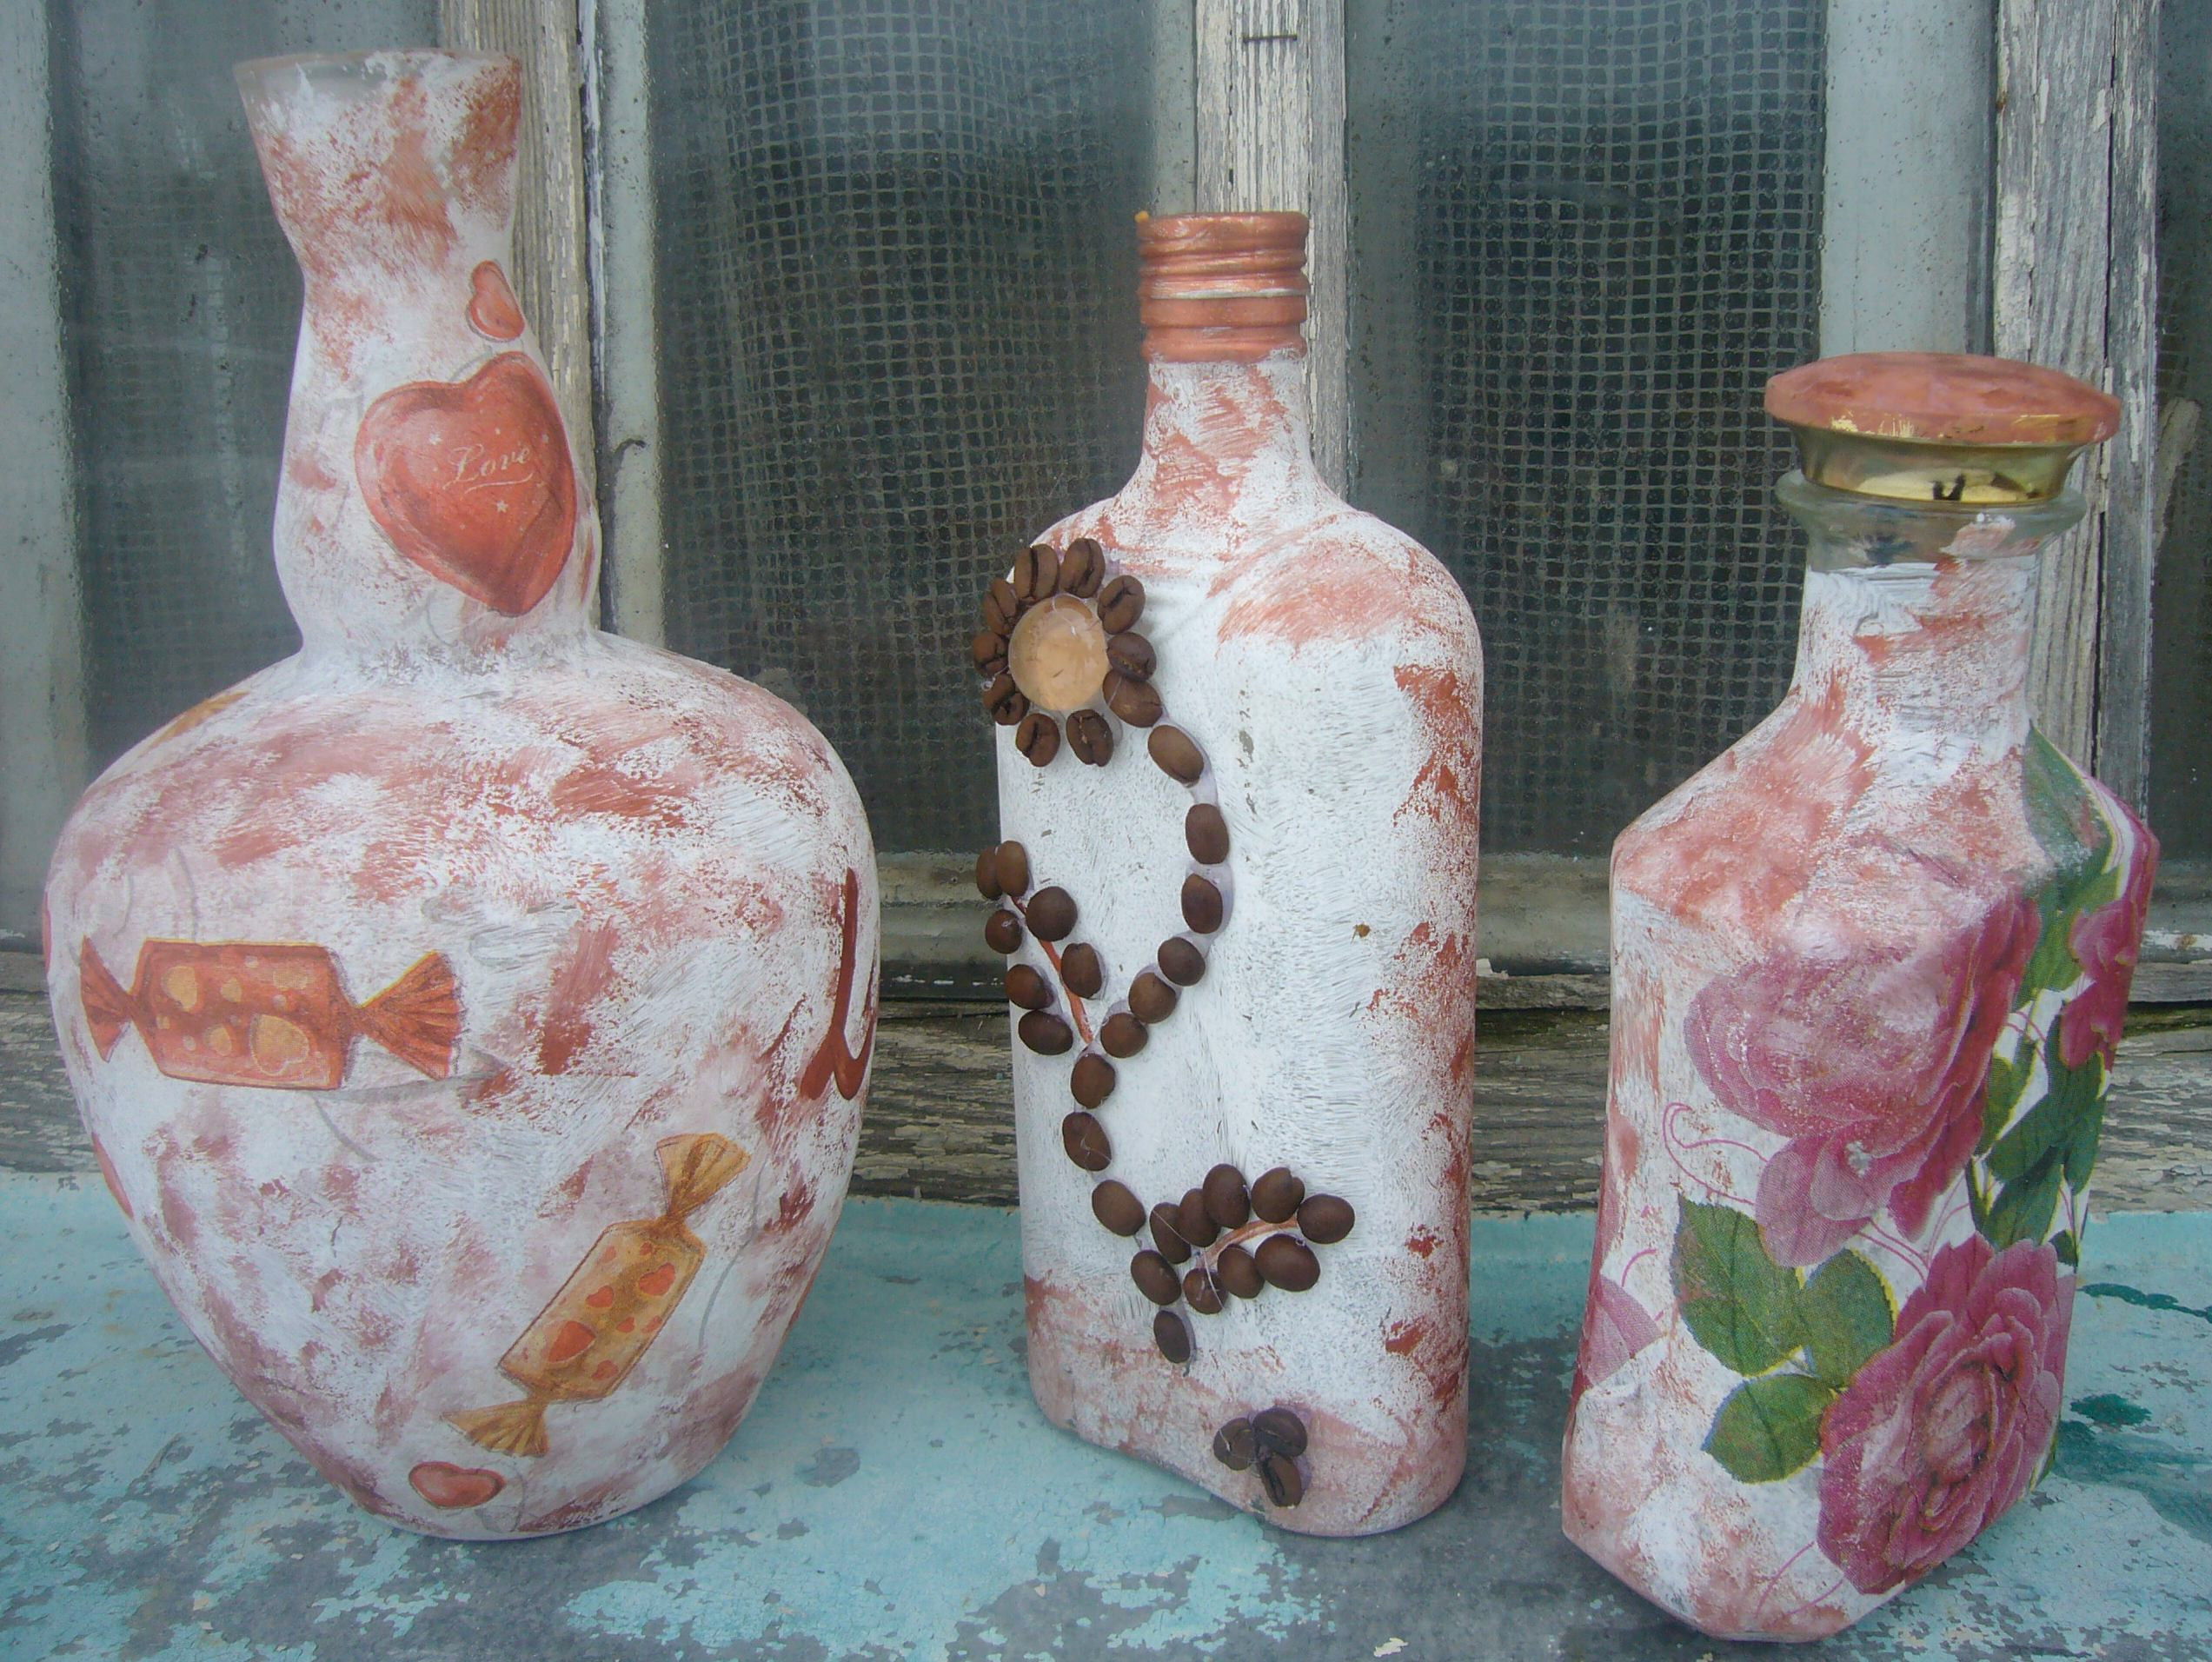 Best ideas about Glass Bottle Craft Ideas . Save or Pin Decoupage ideas pink rosebud glass bottle Now.